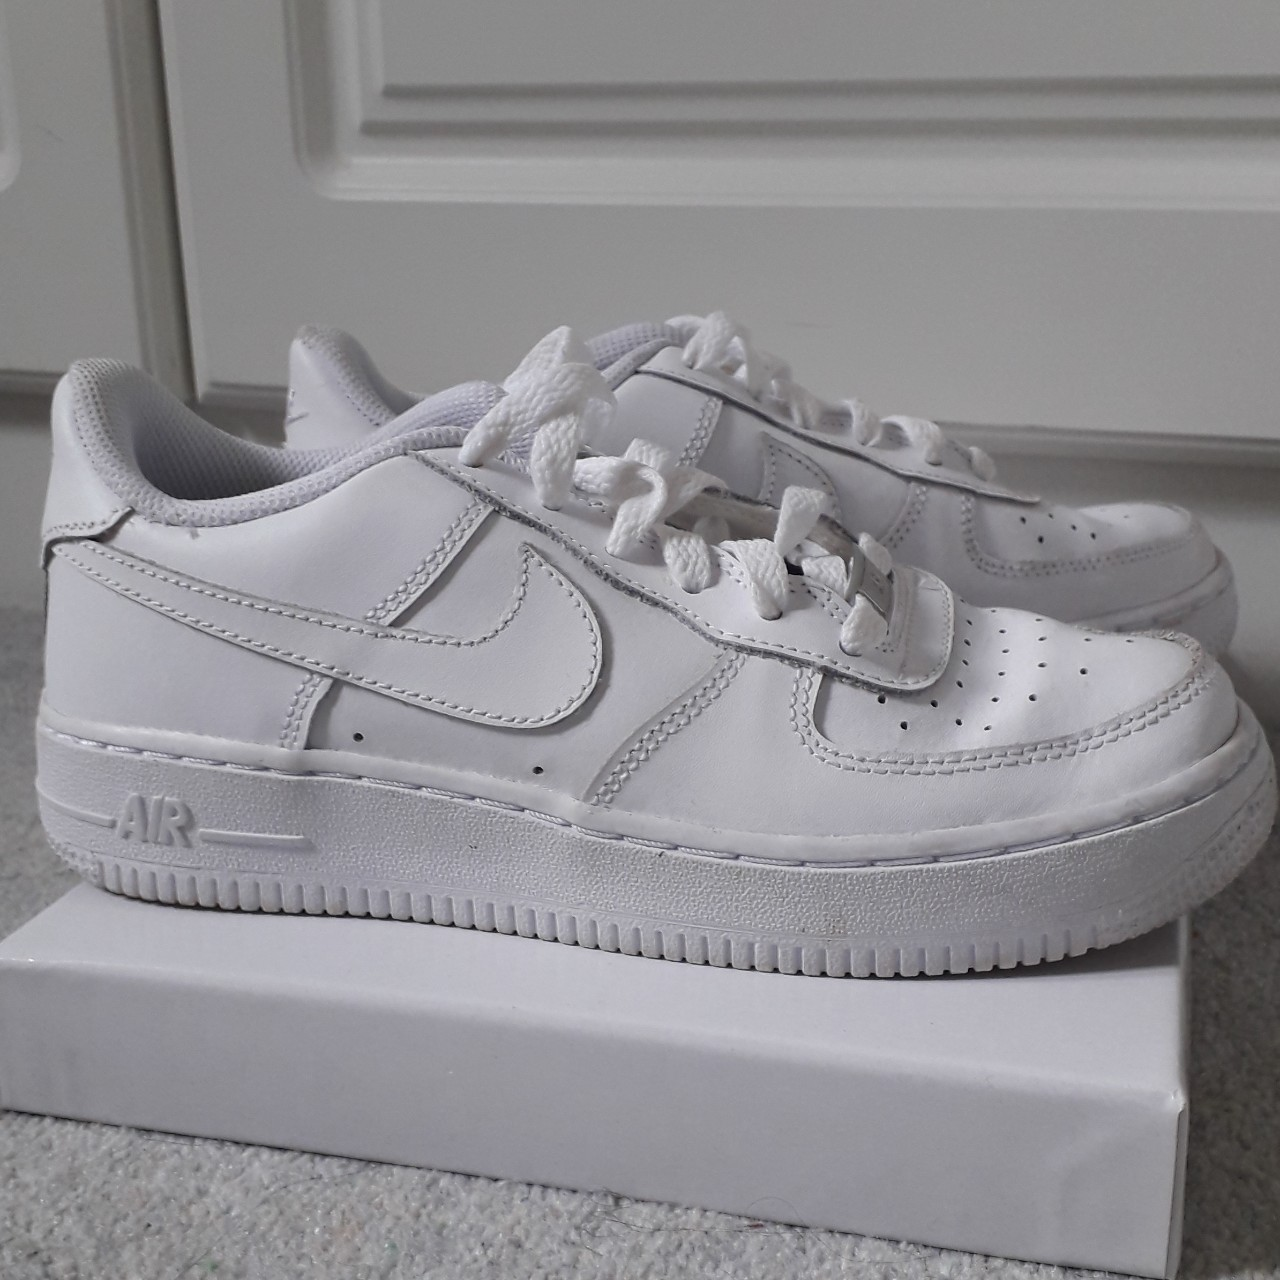 ✅ Nike Air Force 1. White Leather. UK